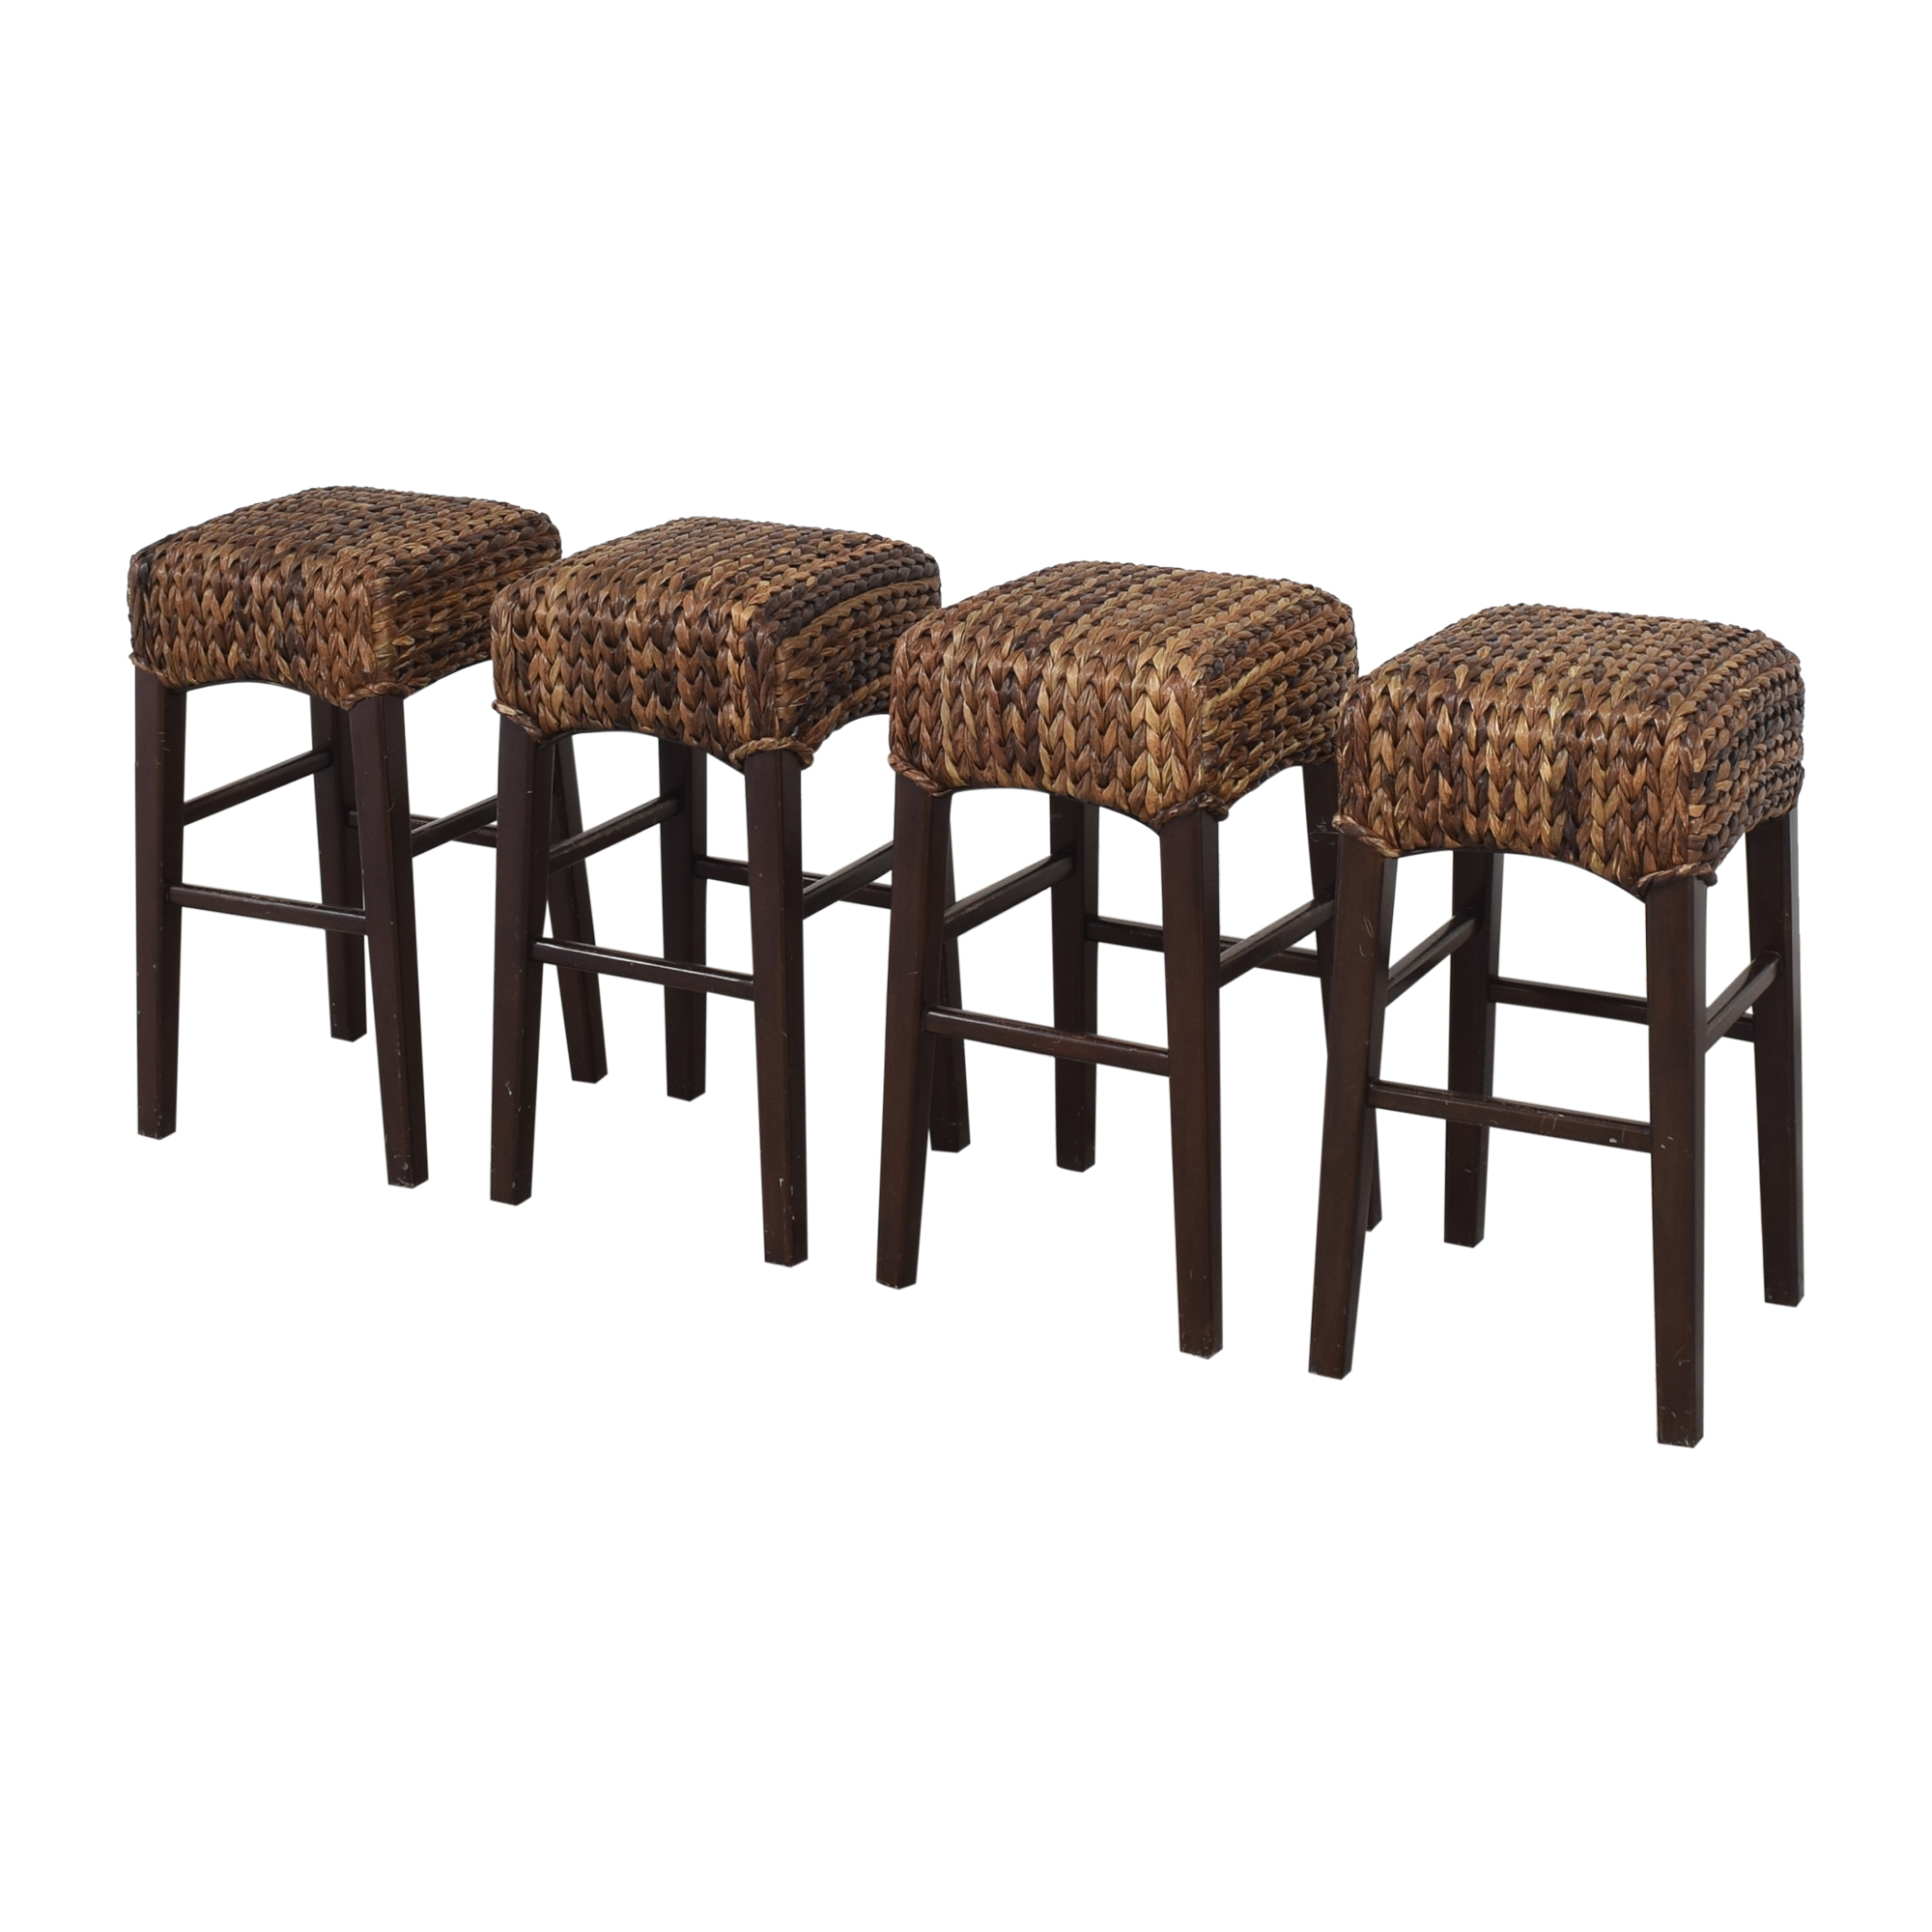 Pottery Barn Pottery Barn Seagrass Counter Stools for sale